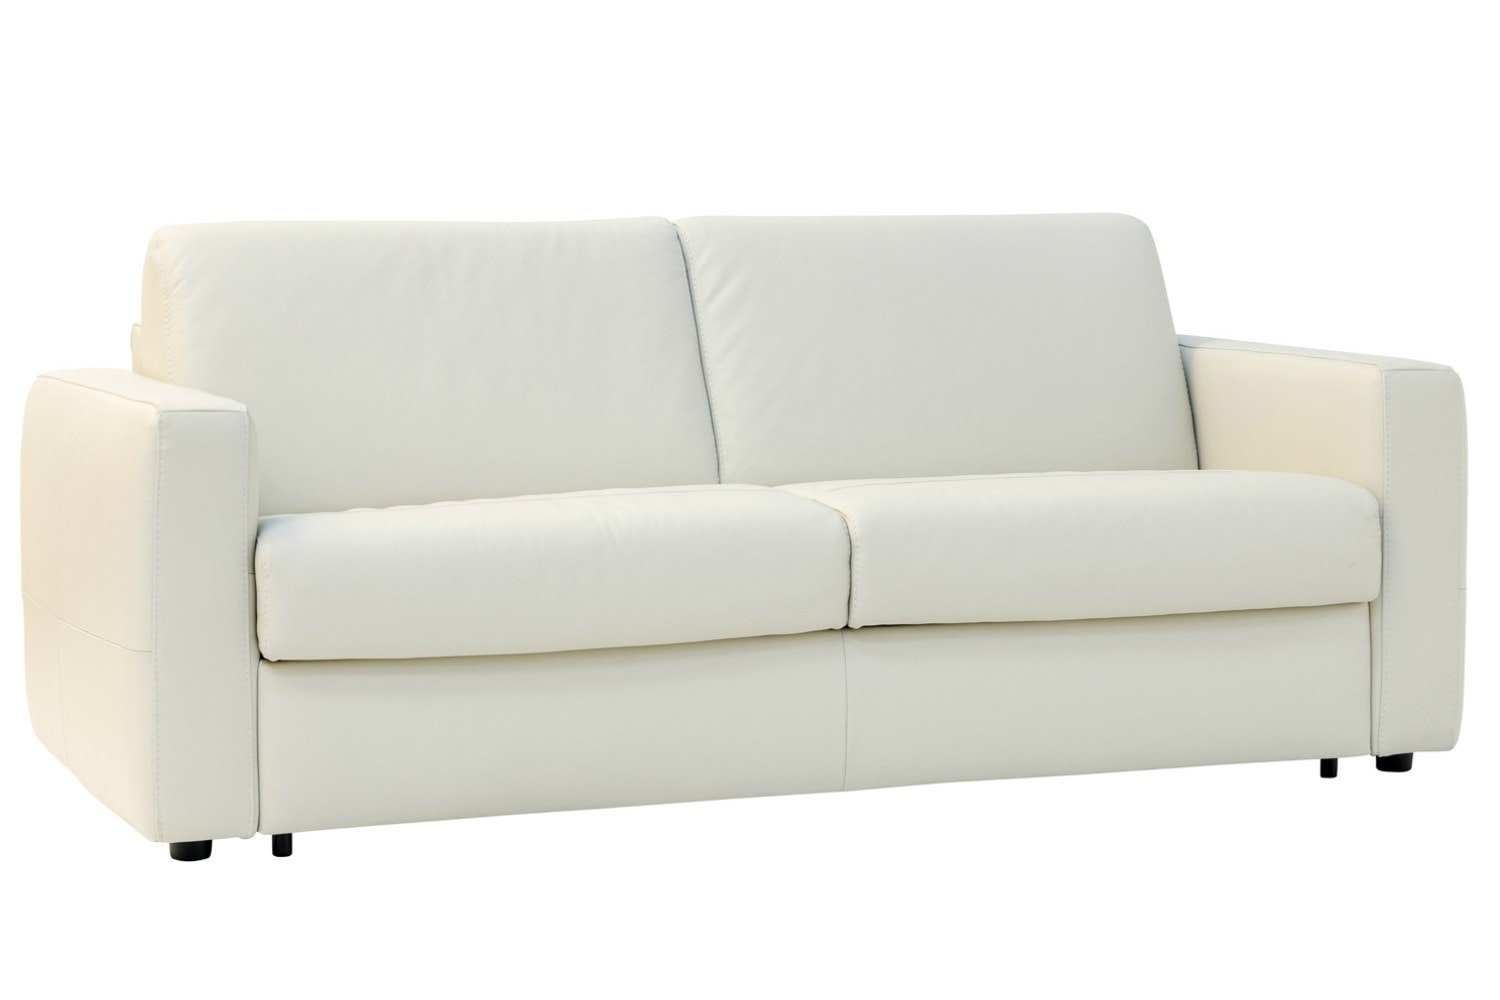 Napoli Sofabed